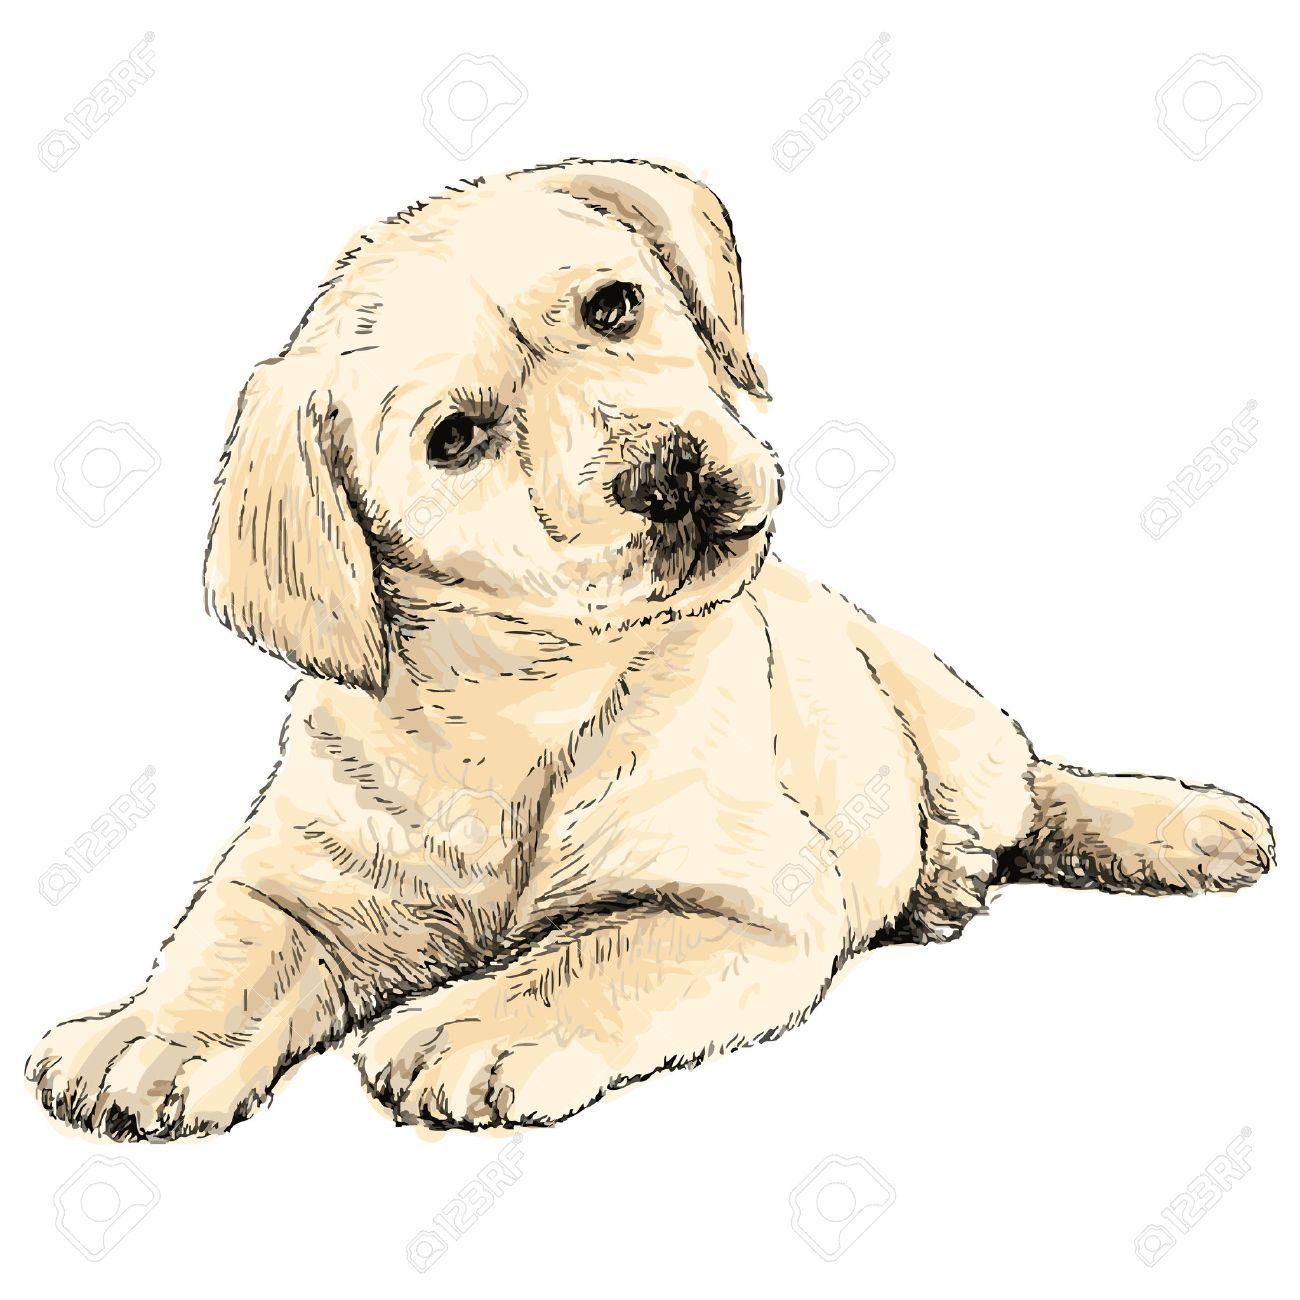 Image Of Labrador Retriever Puppy Hand Drawn Vector Royalty Free Cliparts Vectors And Stock Illustration Image 38900008